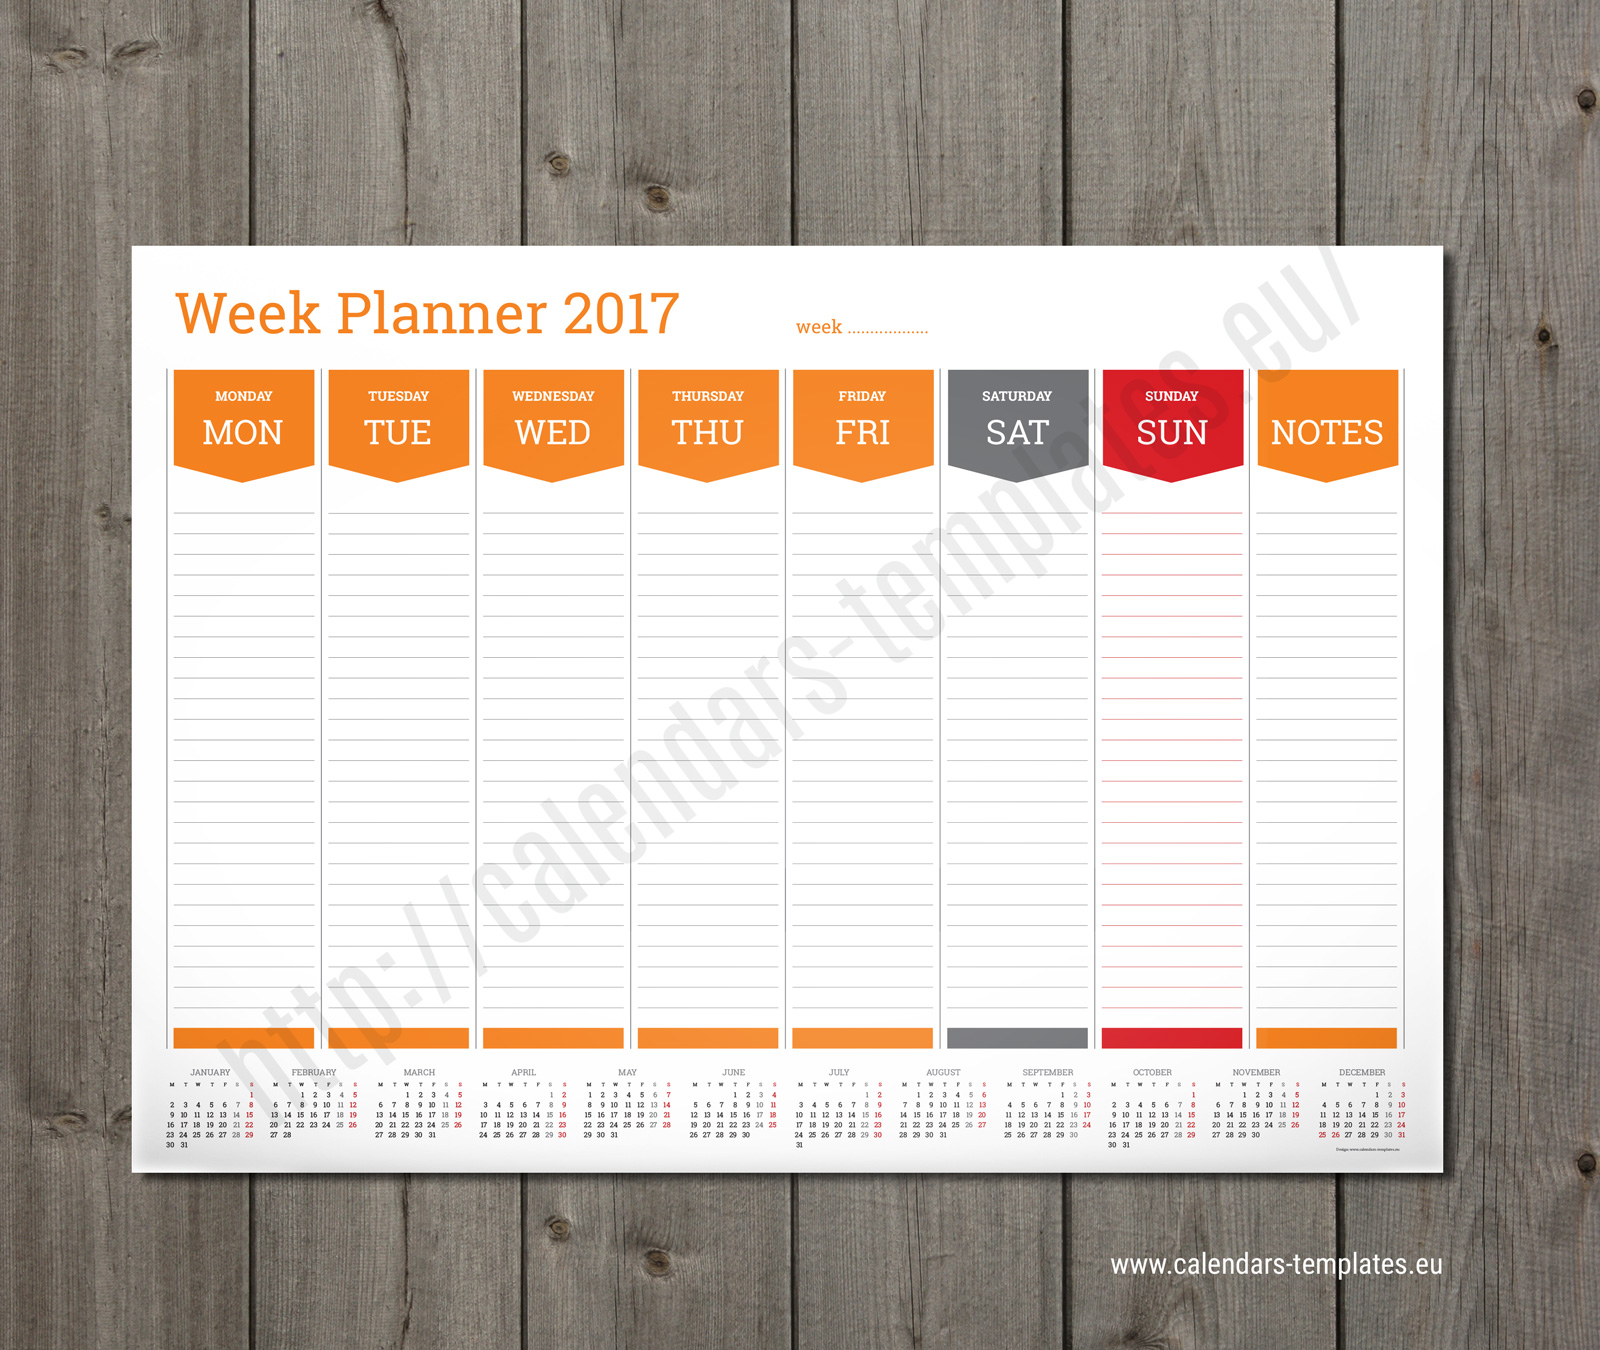 Weekly Calendar Design : Weekly planner template a size pdf format